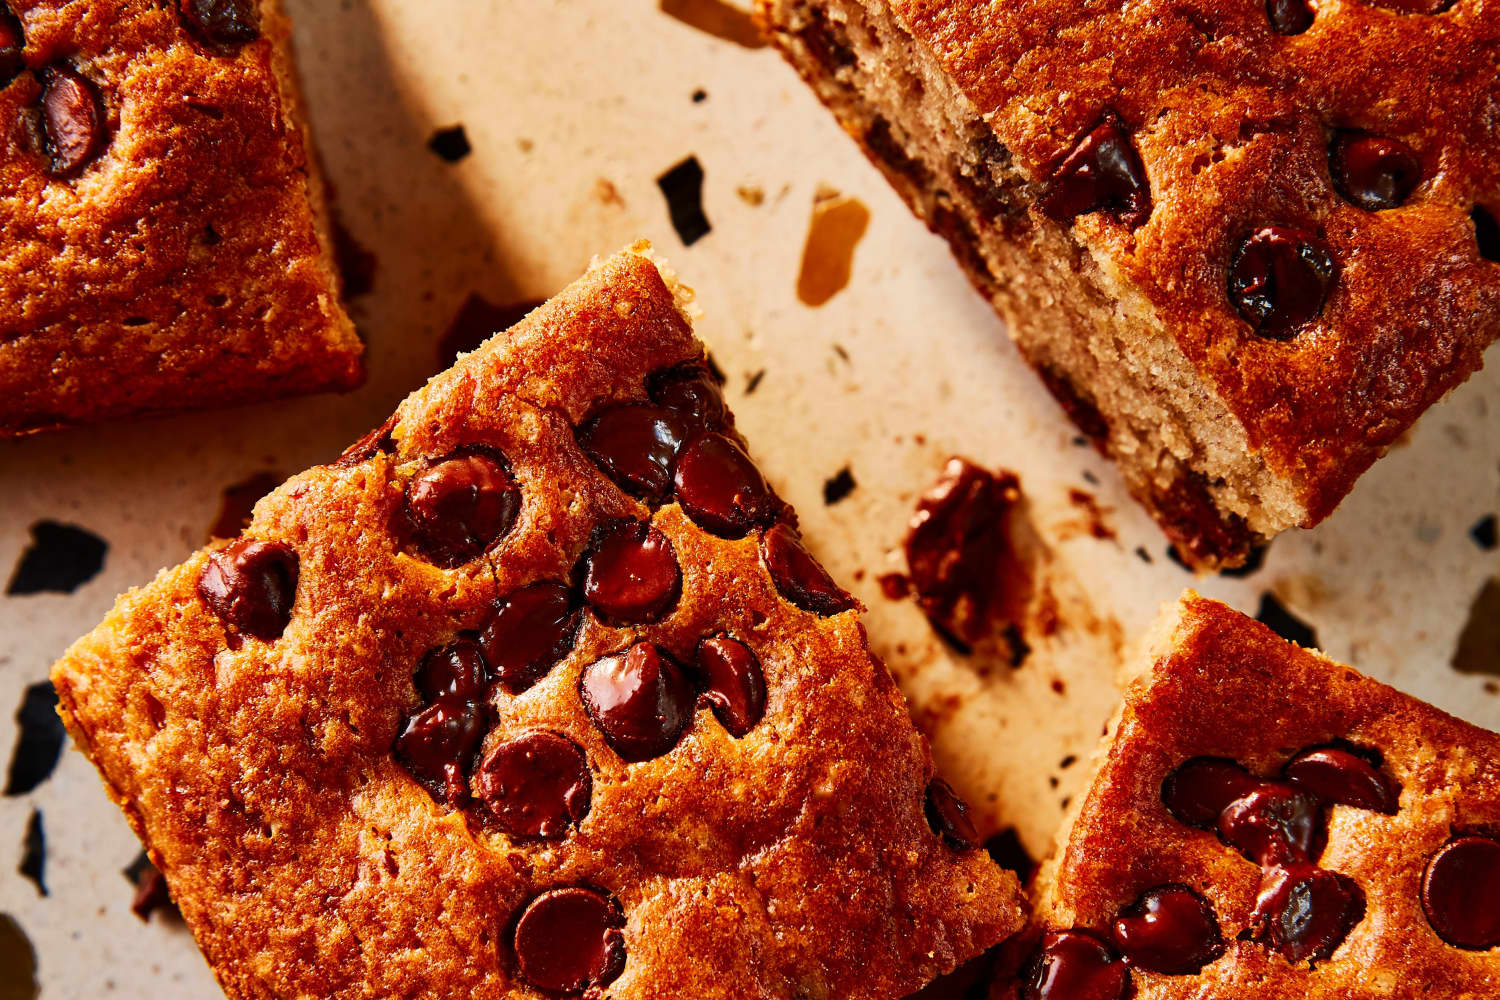 The Magic Chocolate Chip Banana Cake I Couldn't Get Enough of as a New Parent